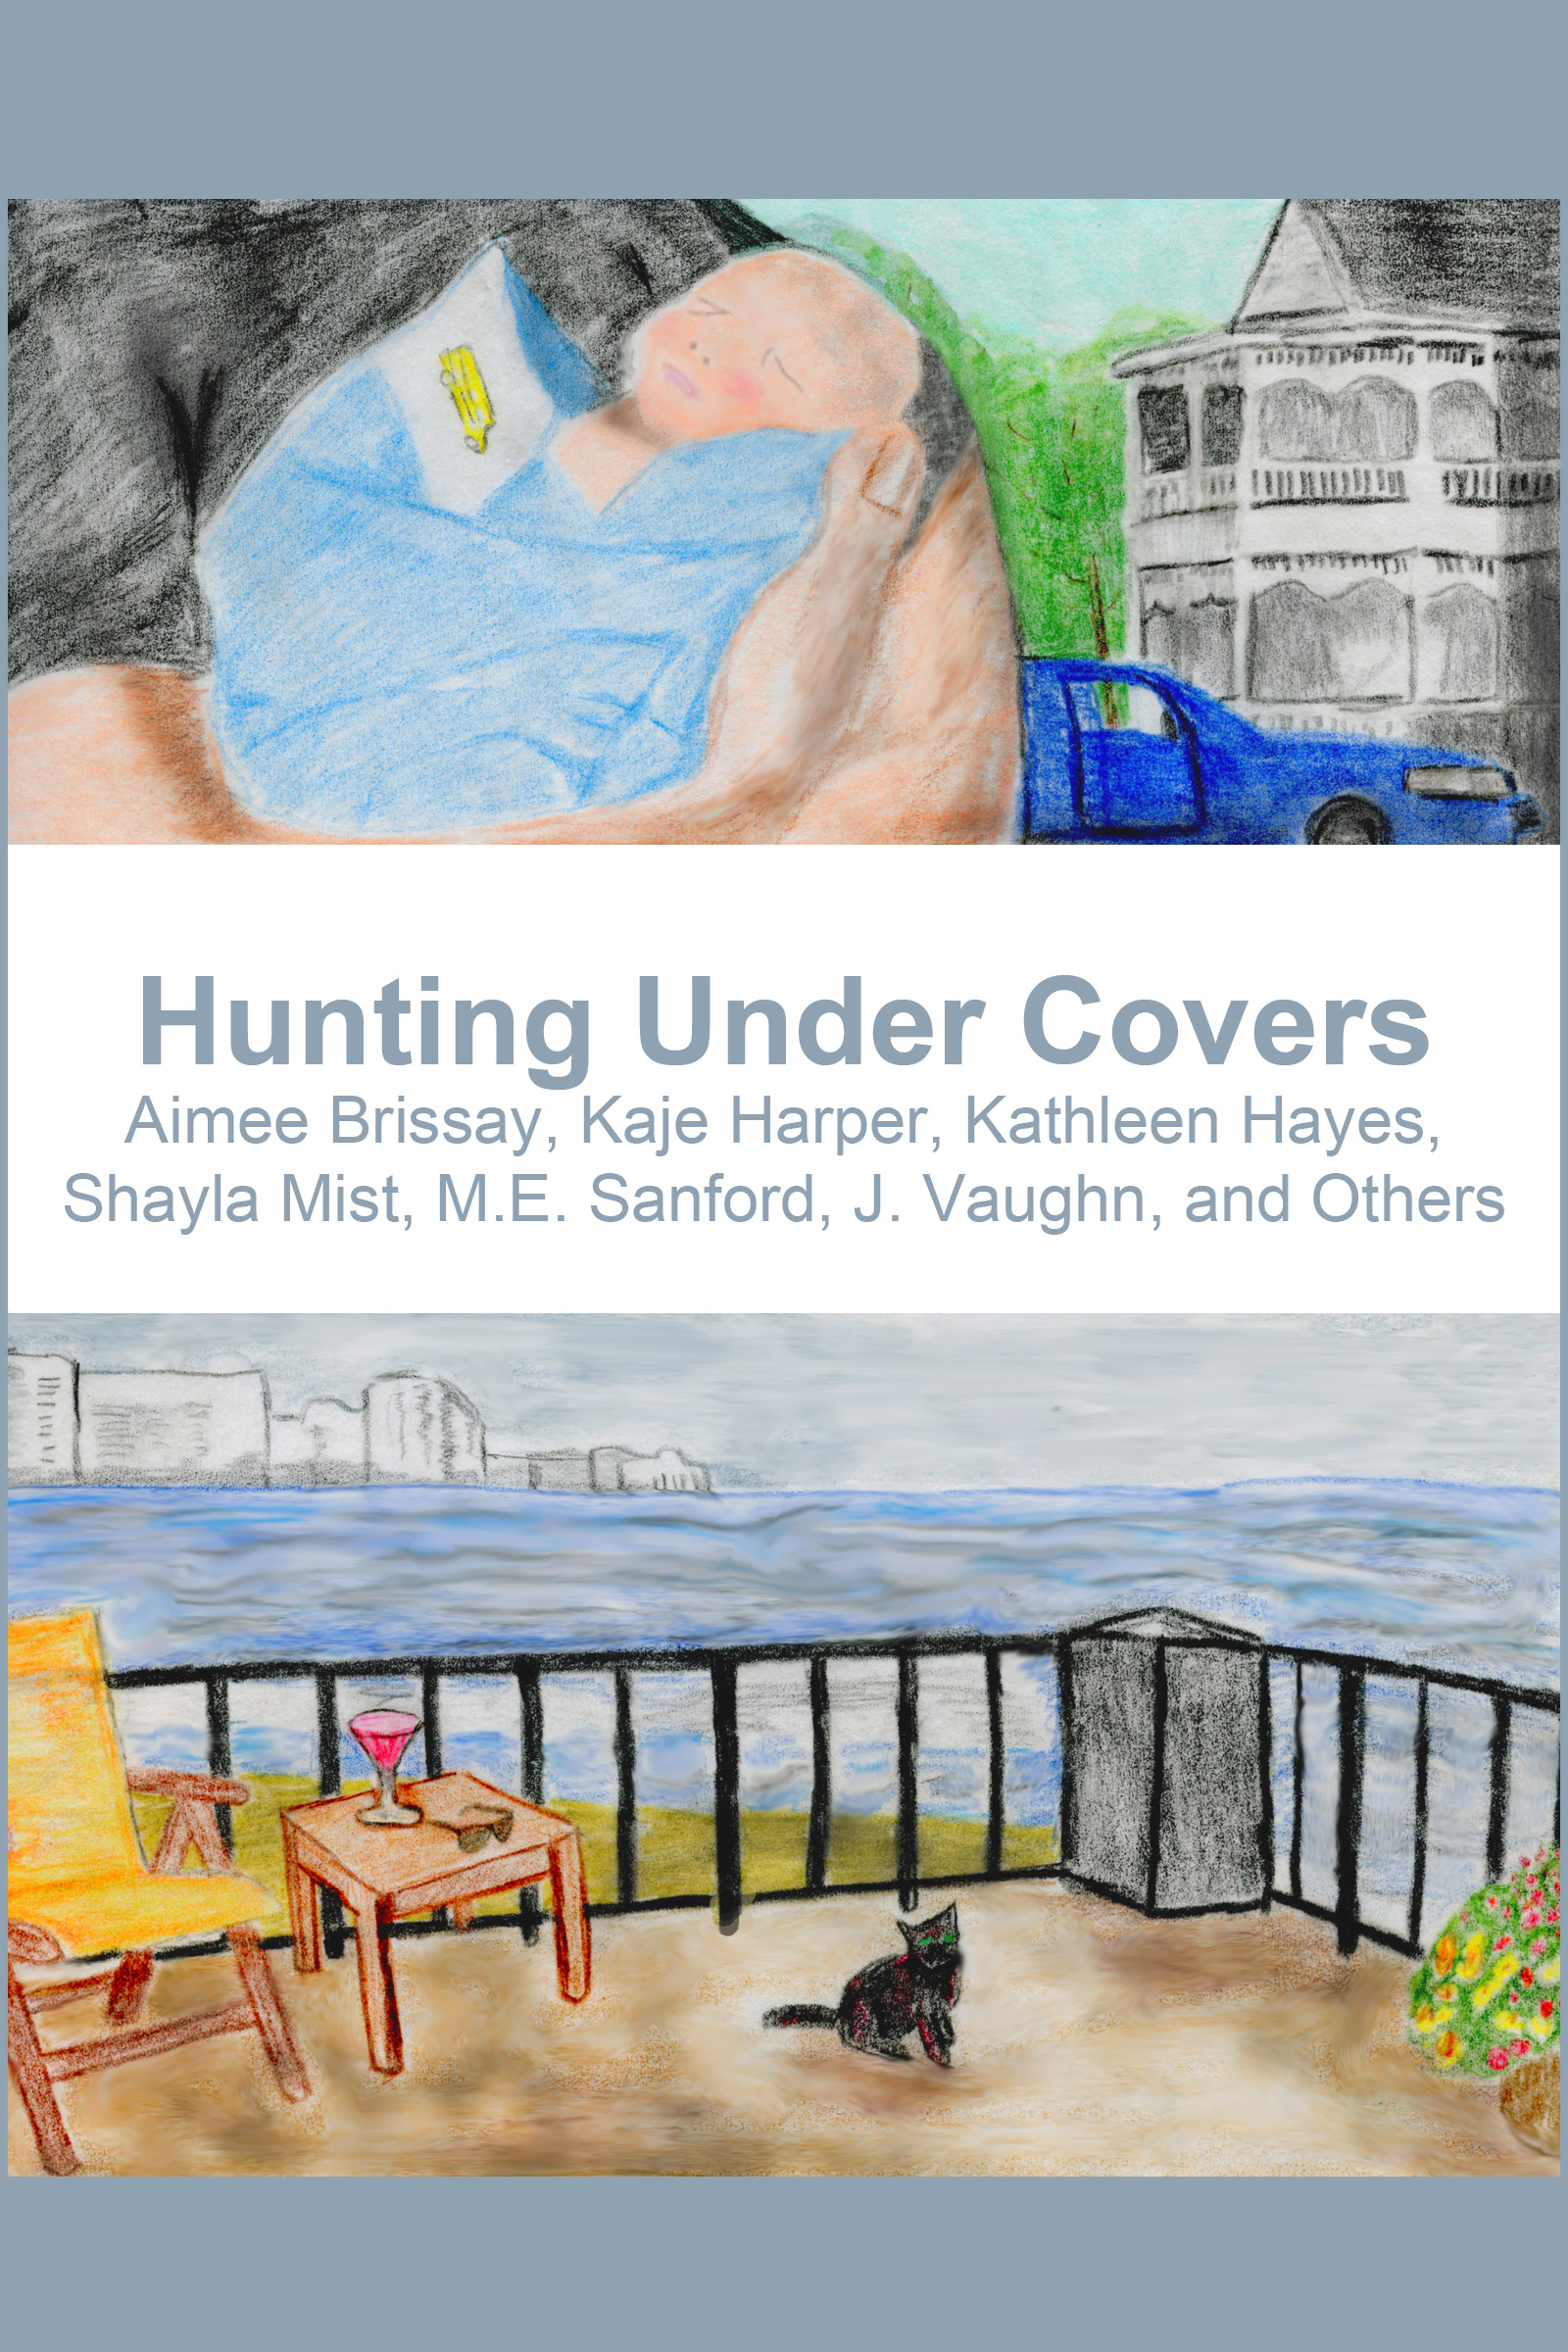 -Hunting Under Covers